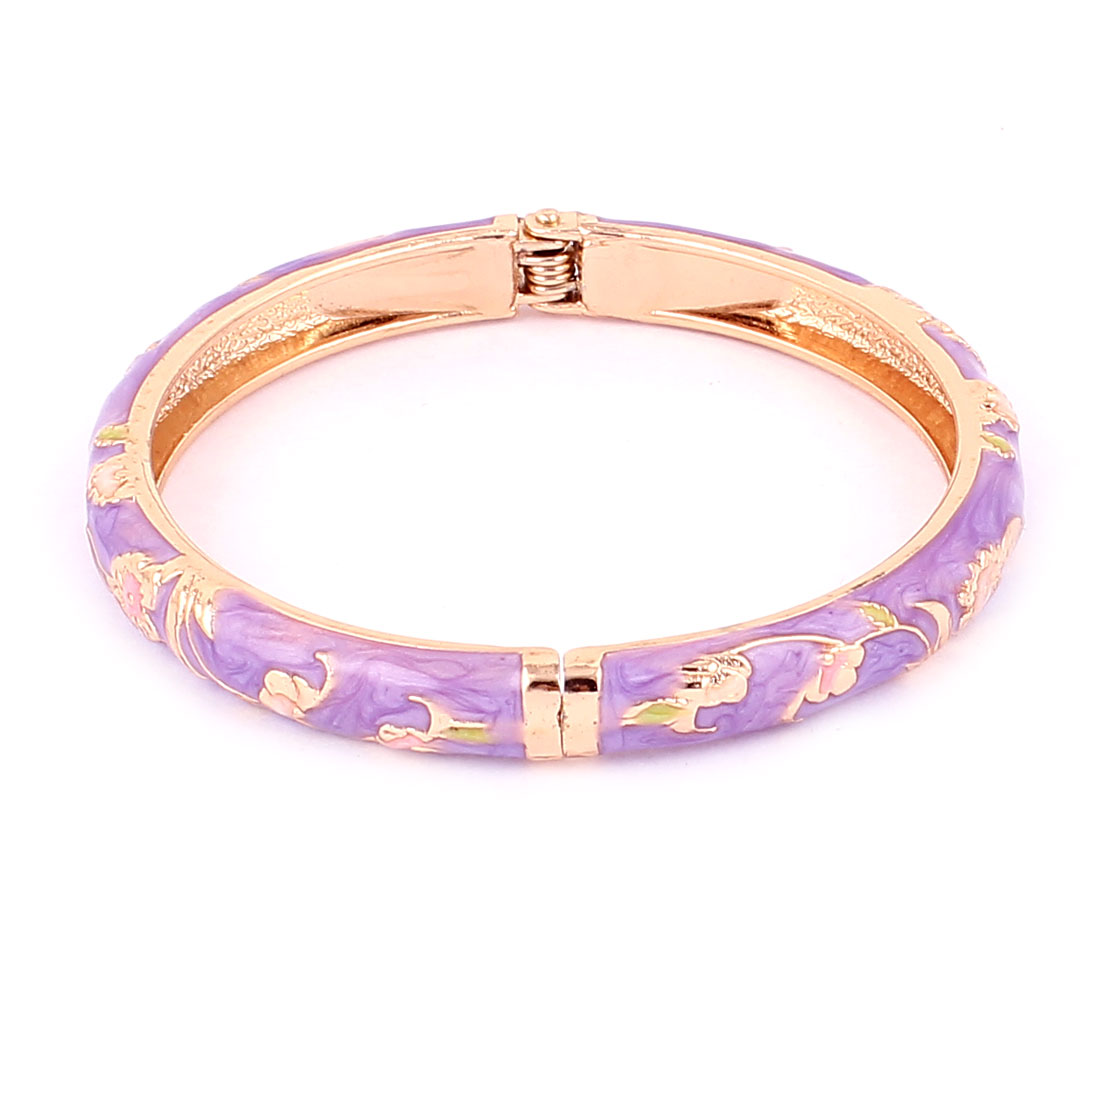 Lady Spring Openable Plated Bangle Jewelry Bracelet Gift Purple